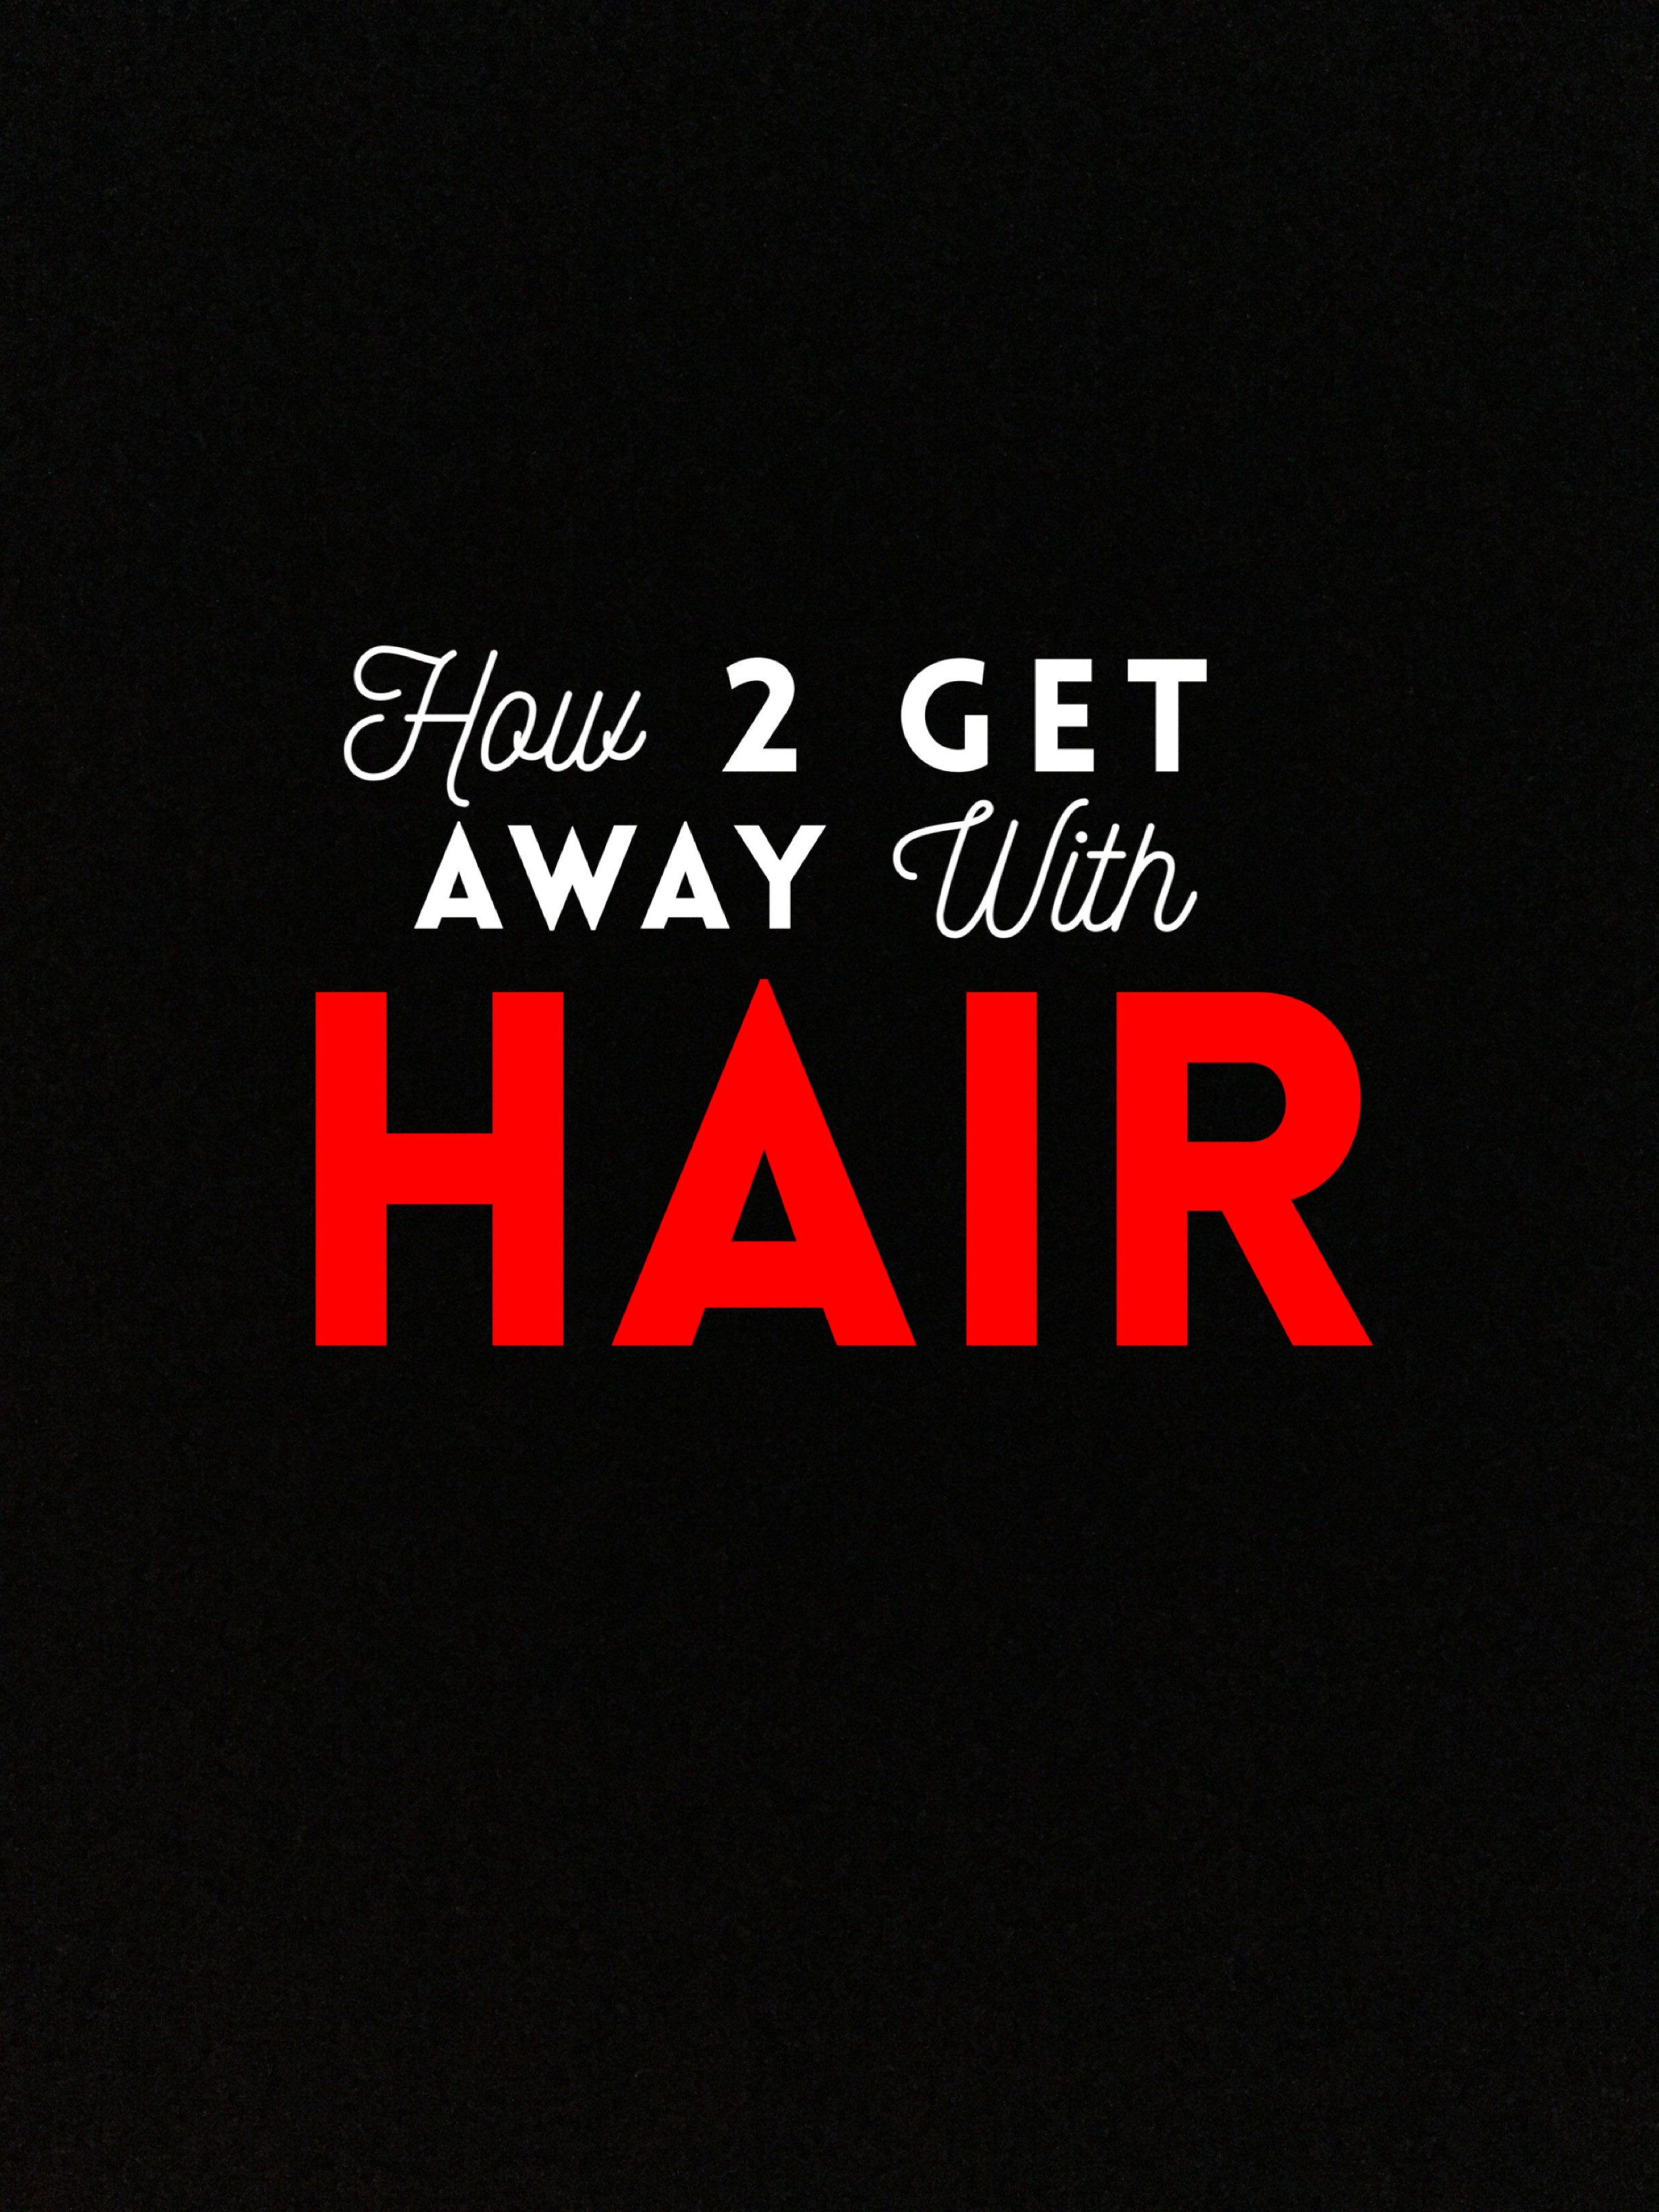 HOW 2 GETAWAY WITH HAIR